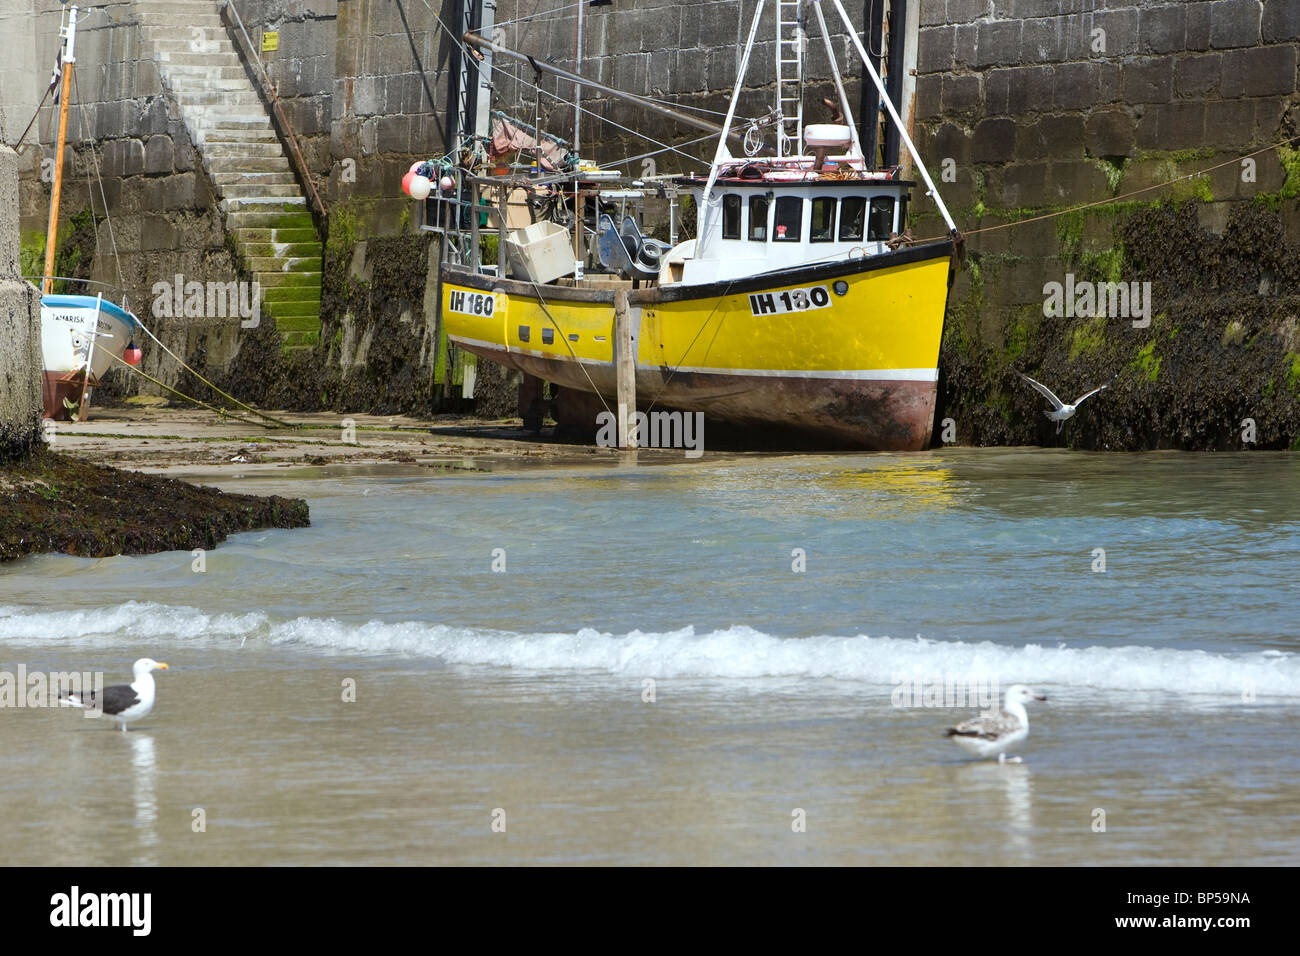 A yellow fishing boat in Newquay harbour at low tide. - Stock Image